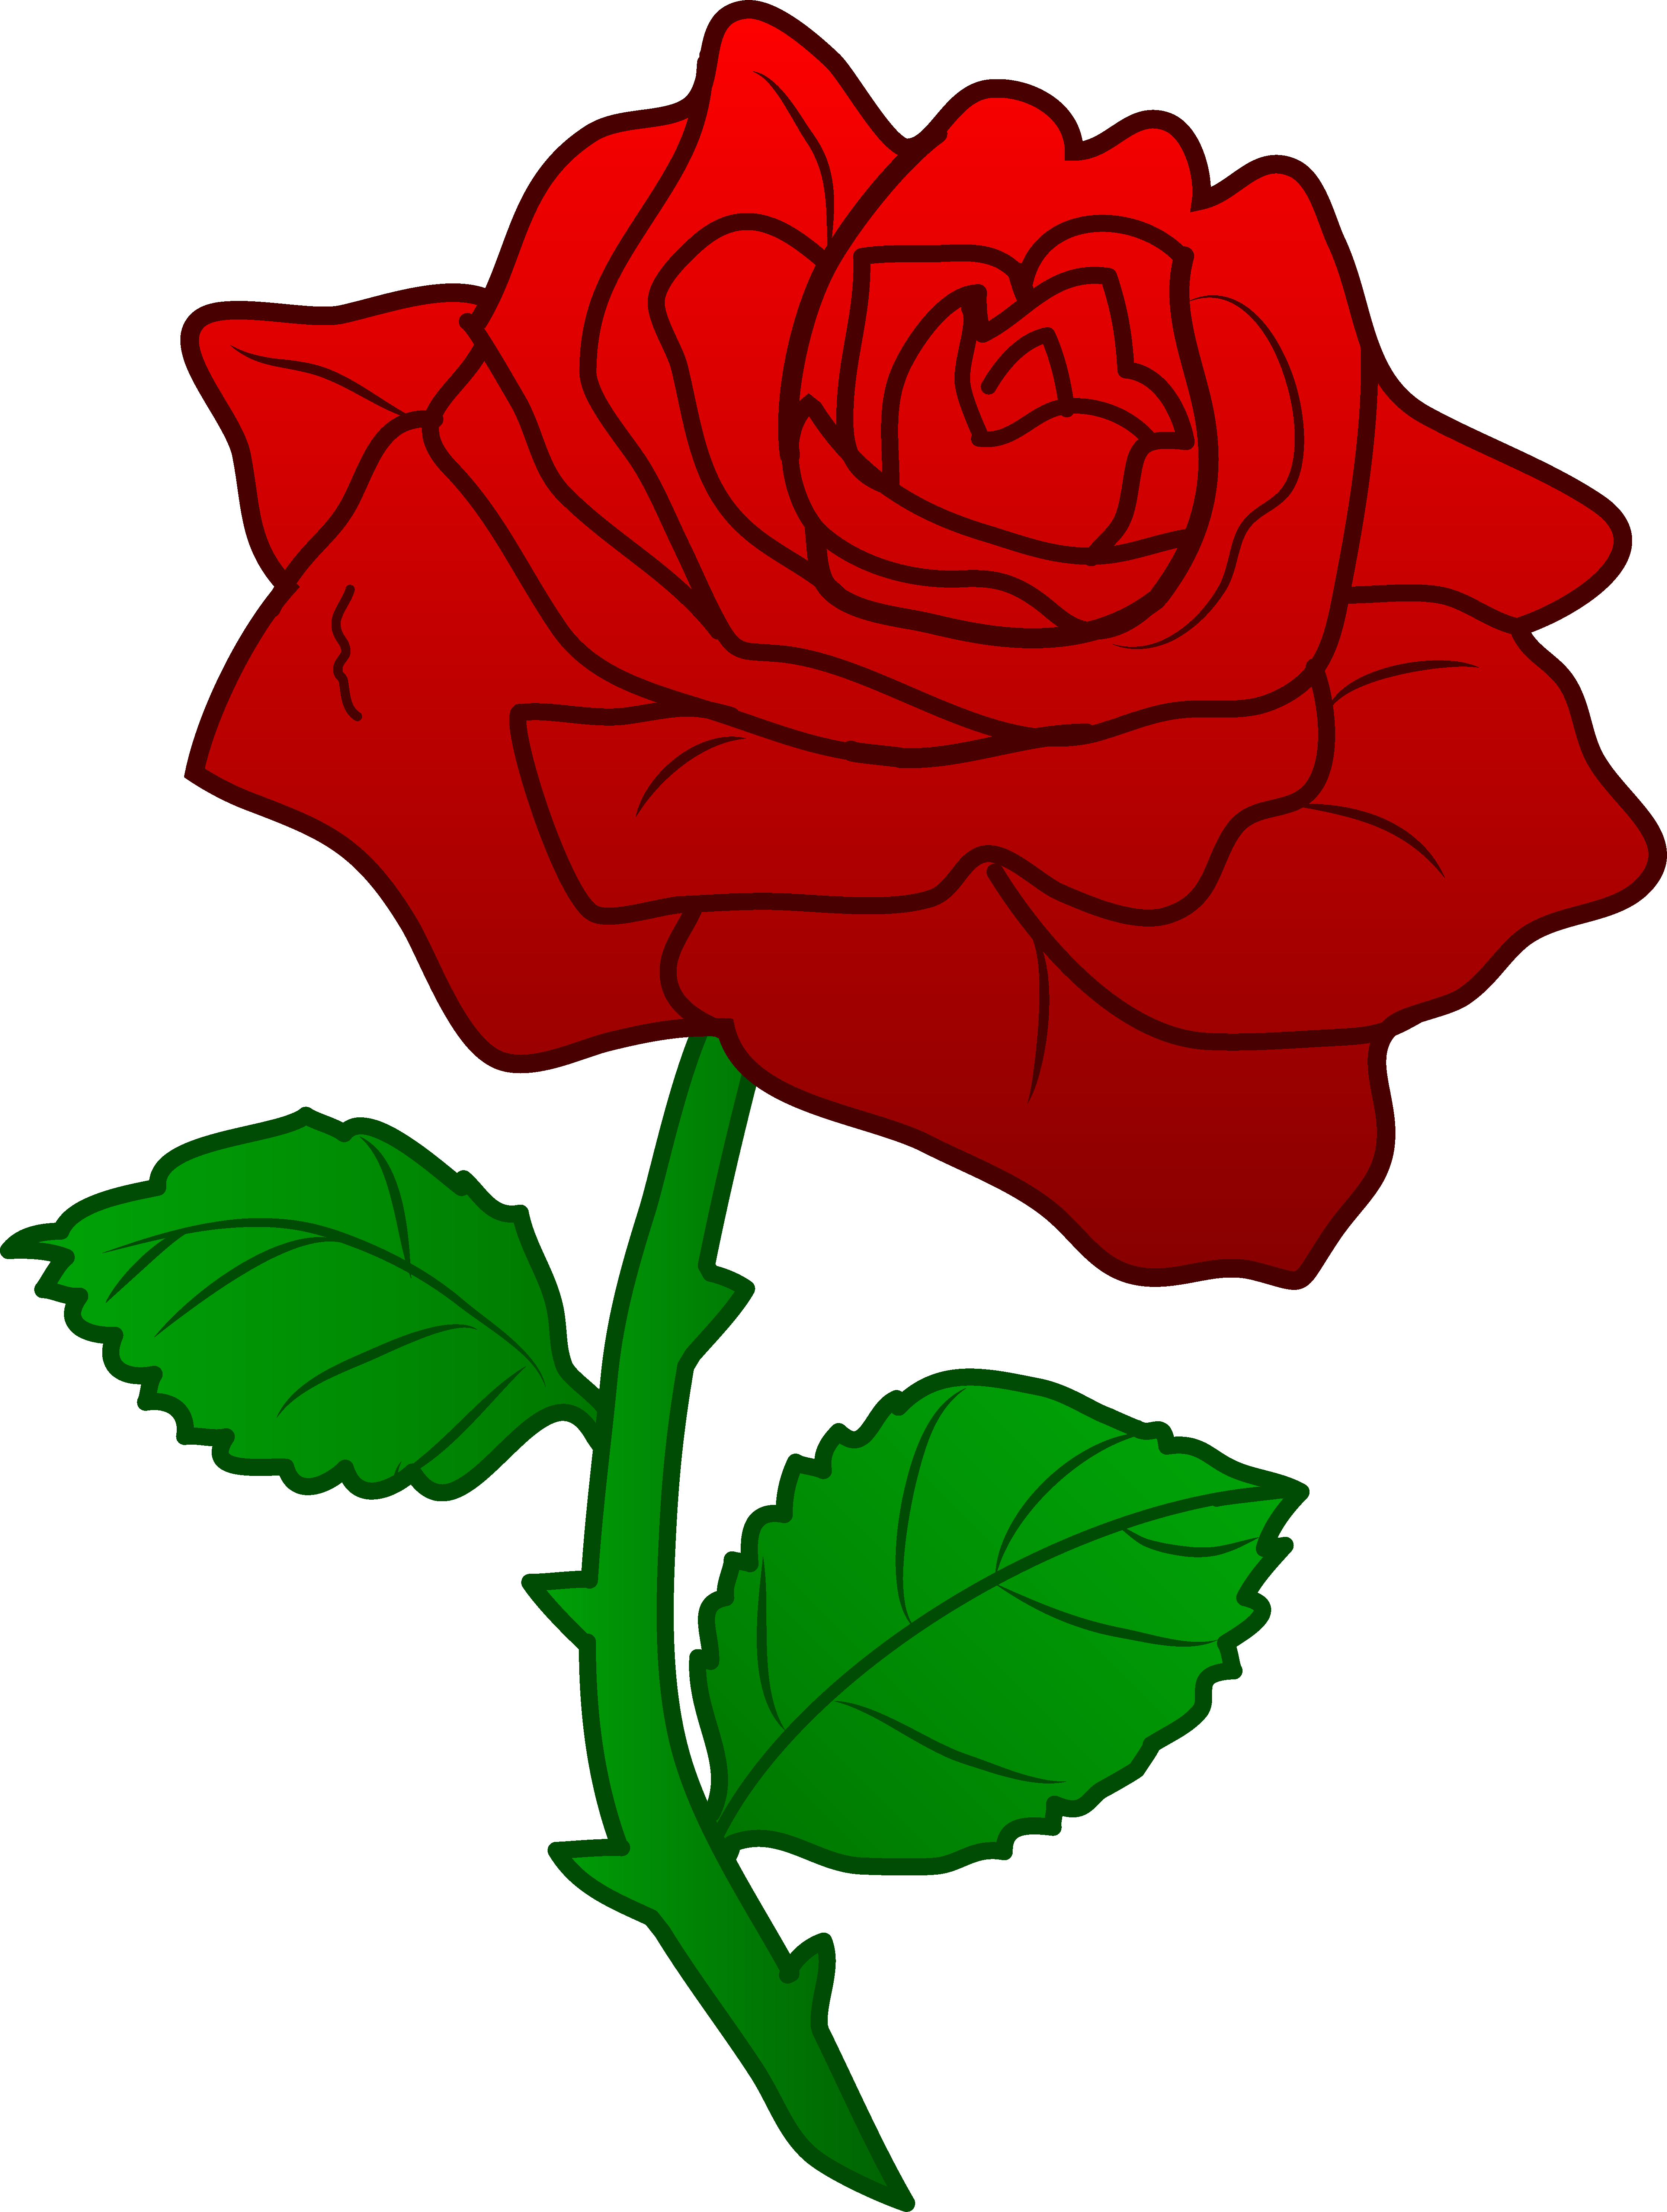 Drawn red rose thorn clipart Clipart Download clipart #19 clipart